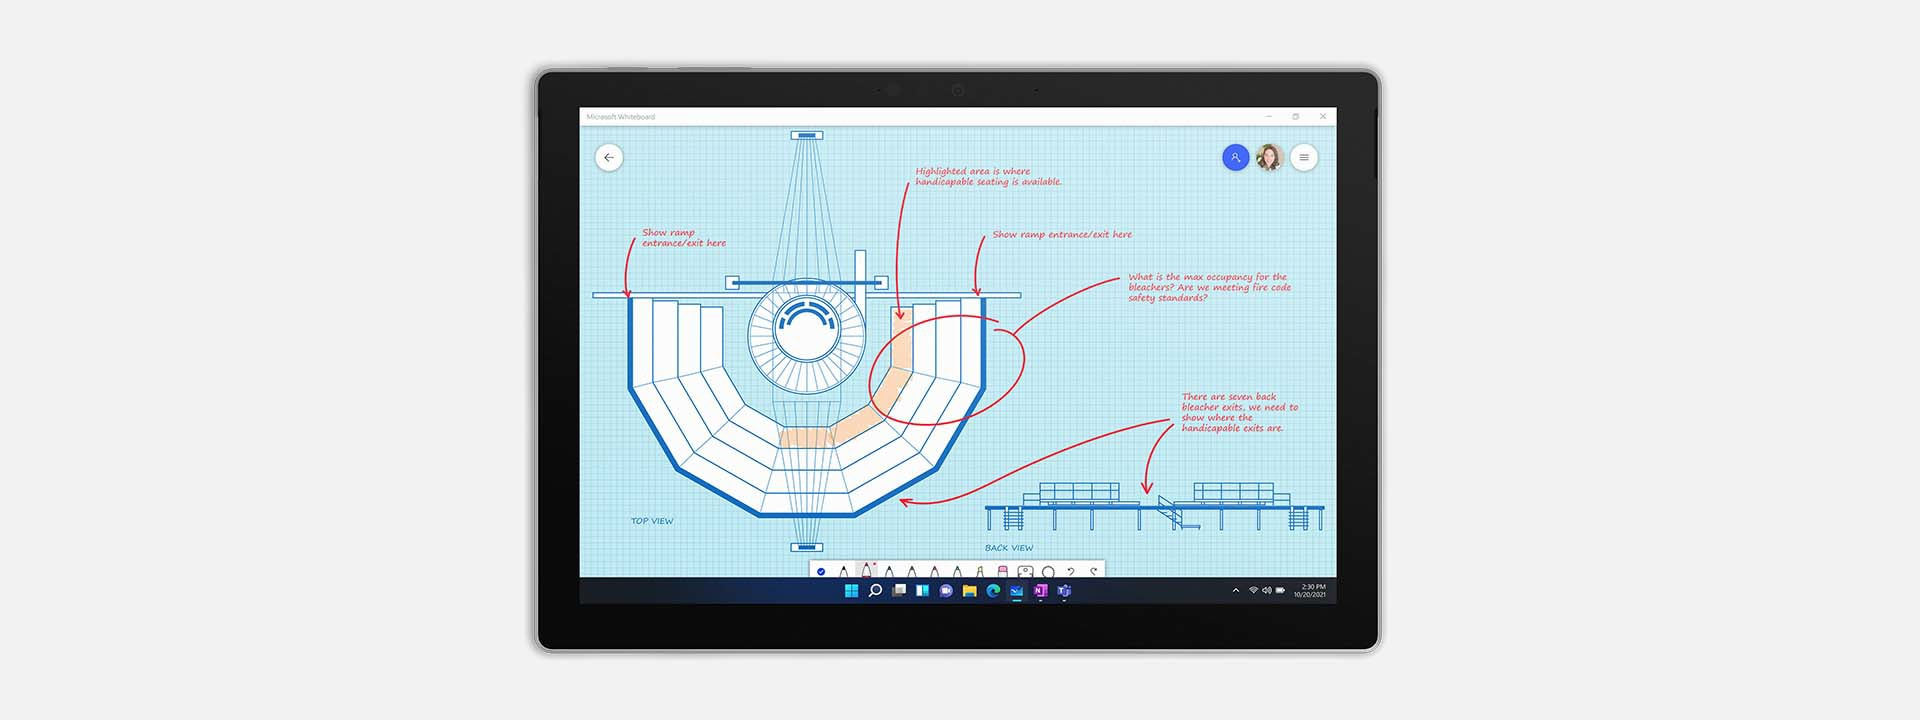 Use the SurfacePro 7+ in Tablet Mode